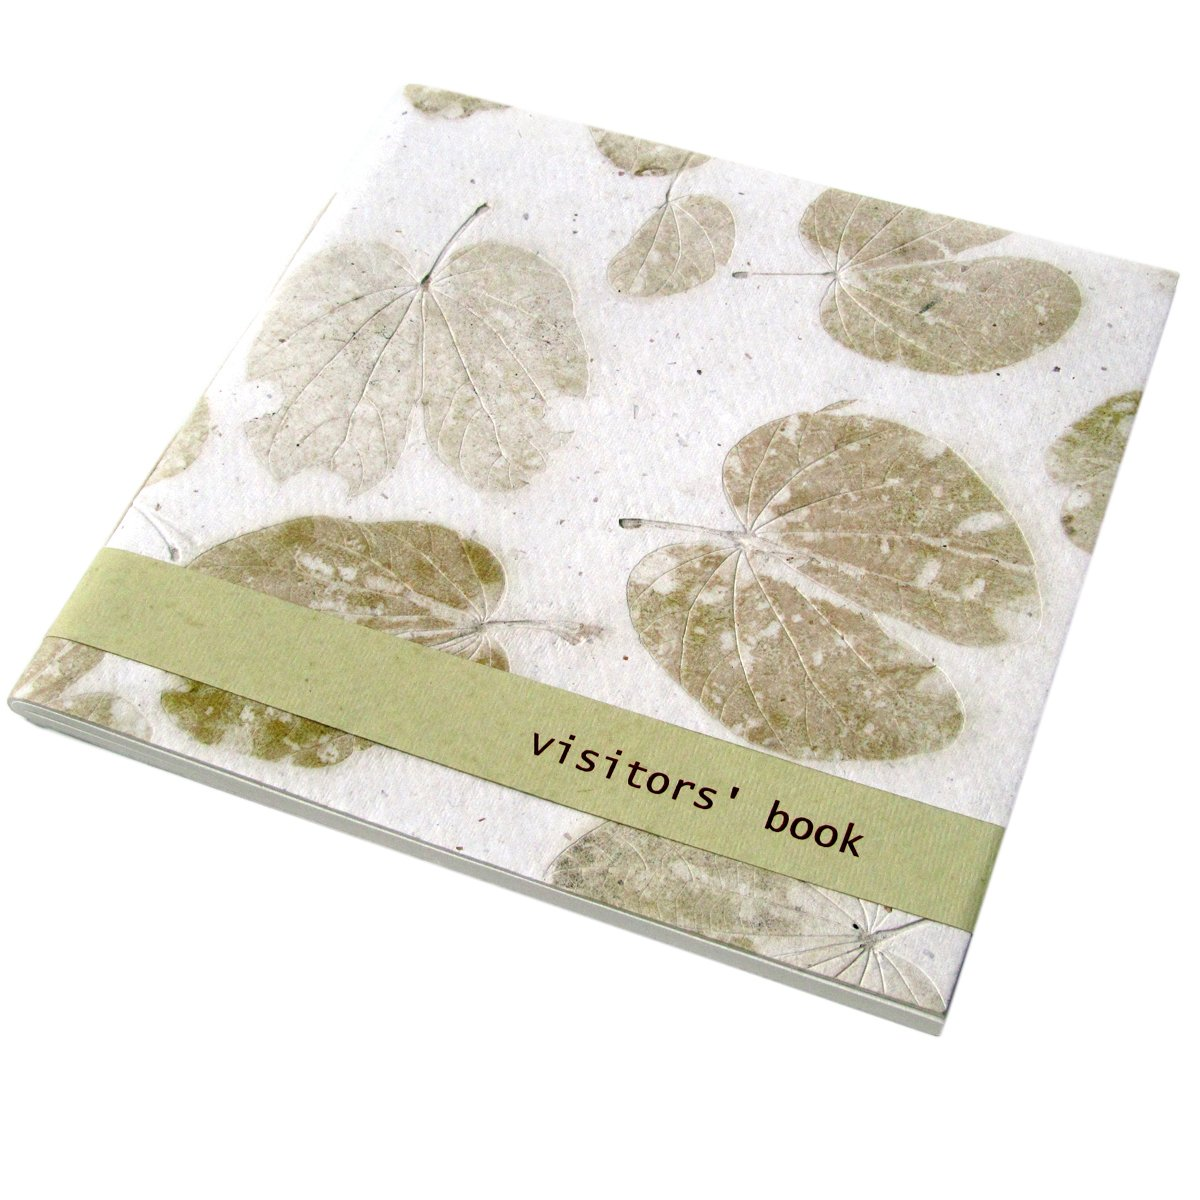 Handmade guest book 9.5x9.5 wedding 96pp white heart natural leaf paper green bday mom xmas gifts